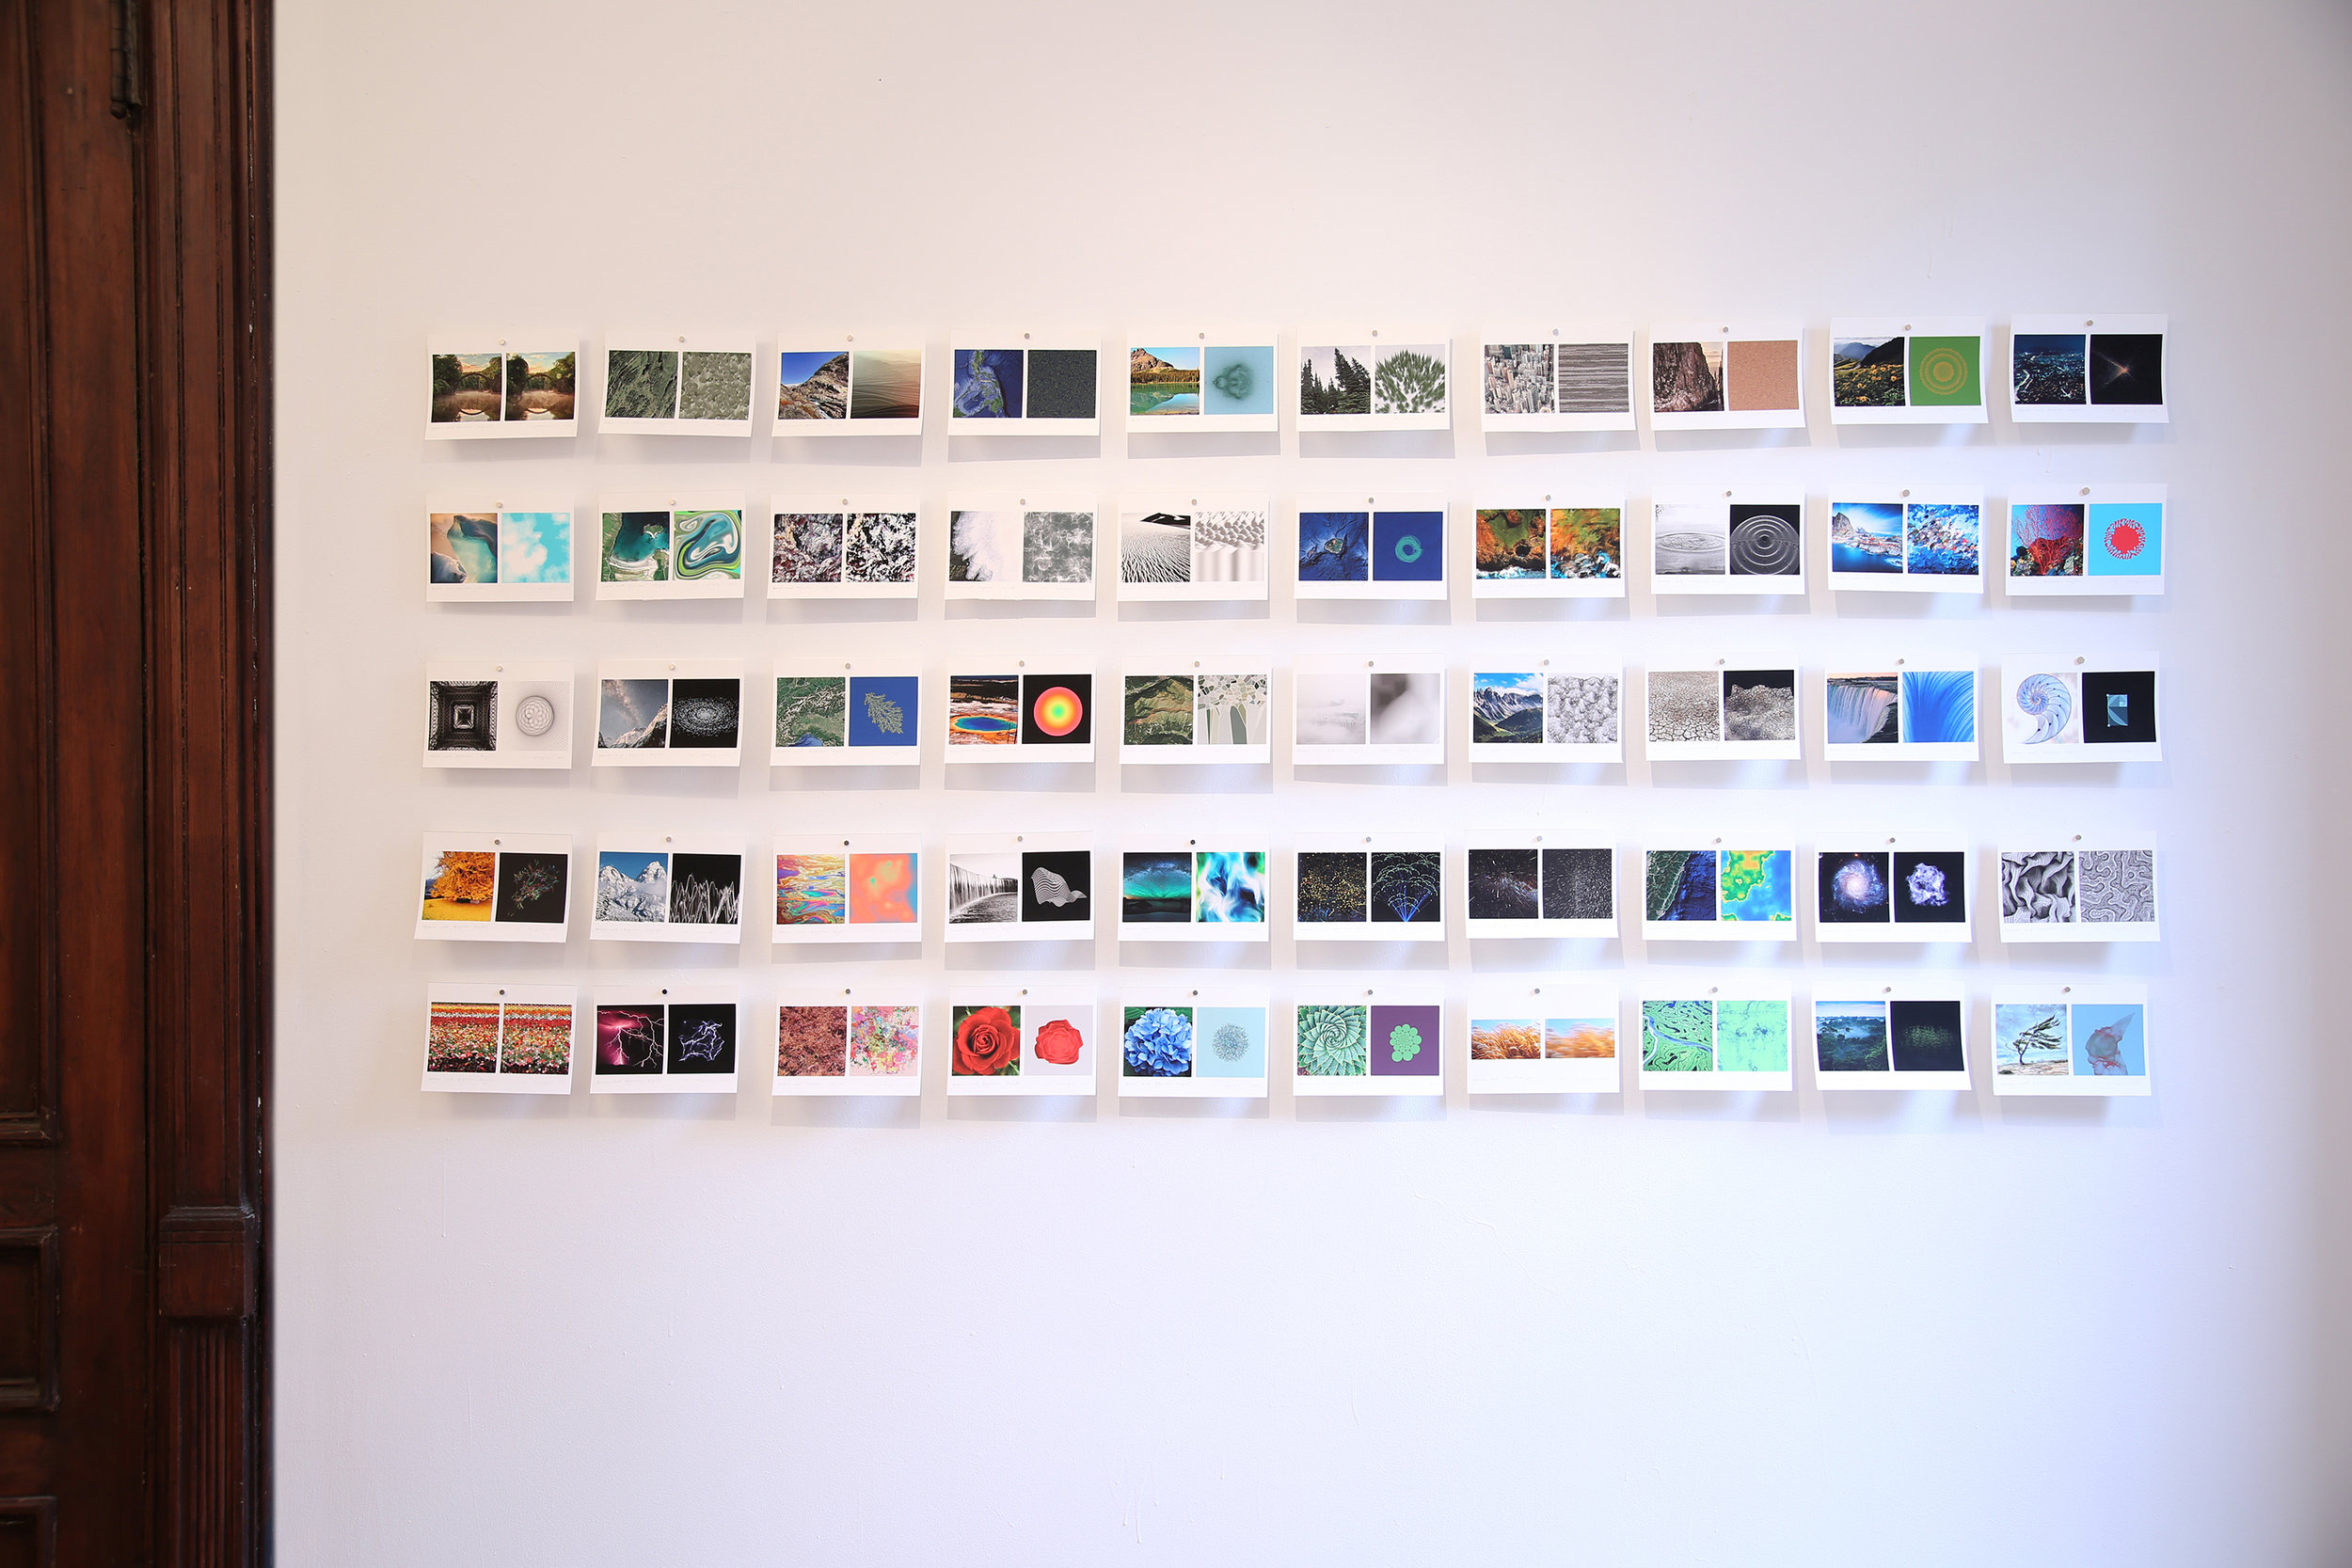 Installation View    o  f     Day 51 - 100, Prints on wall at Fou Gallery